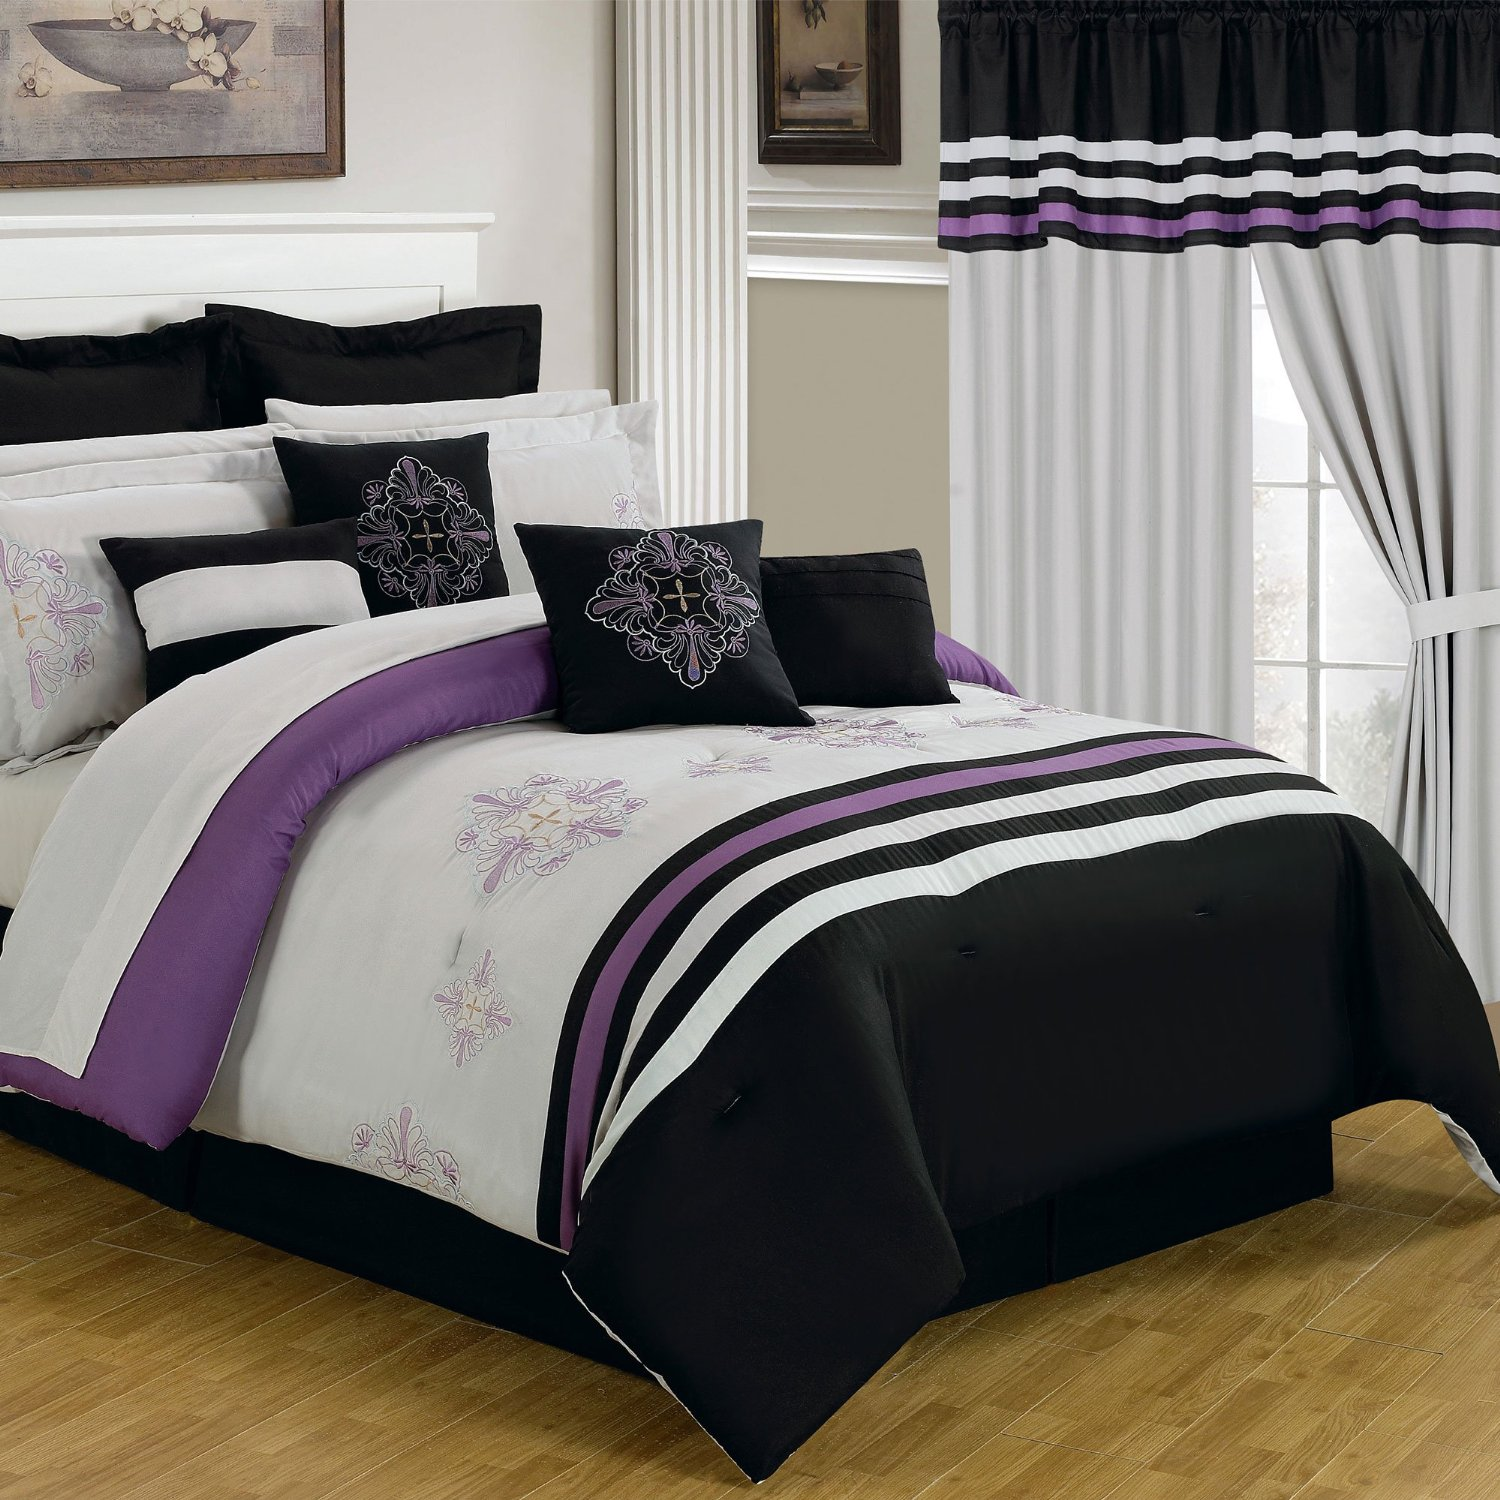 Purple Black And White Bedding Sets Drama Uplifted